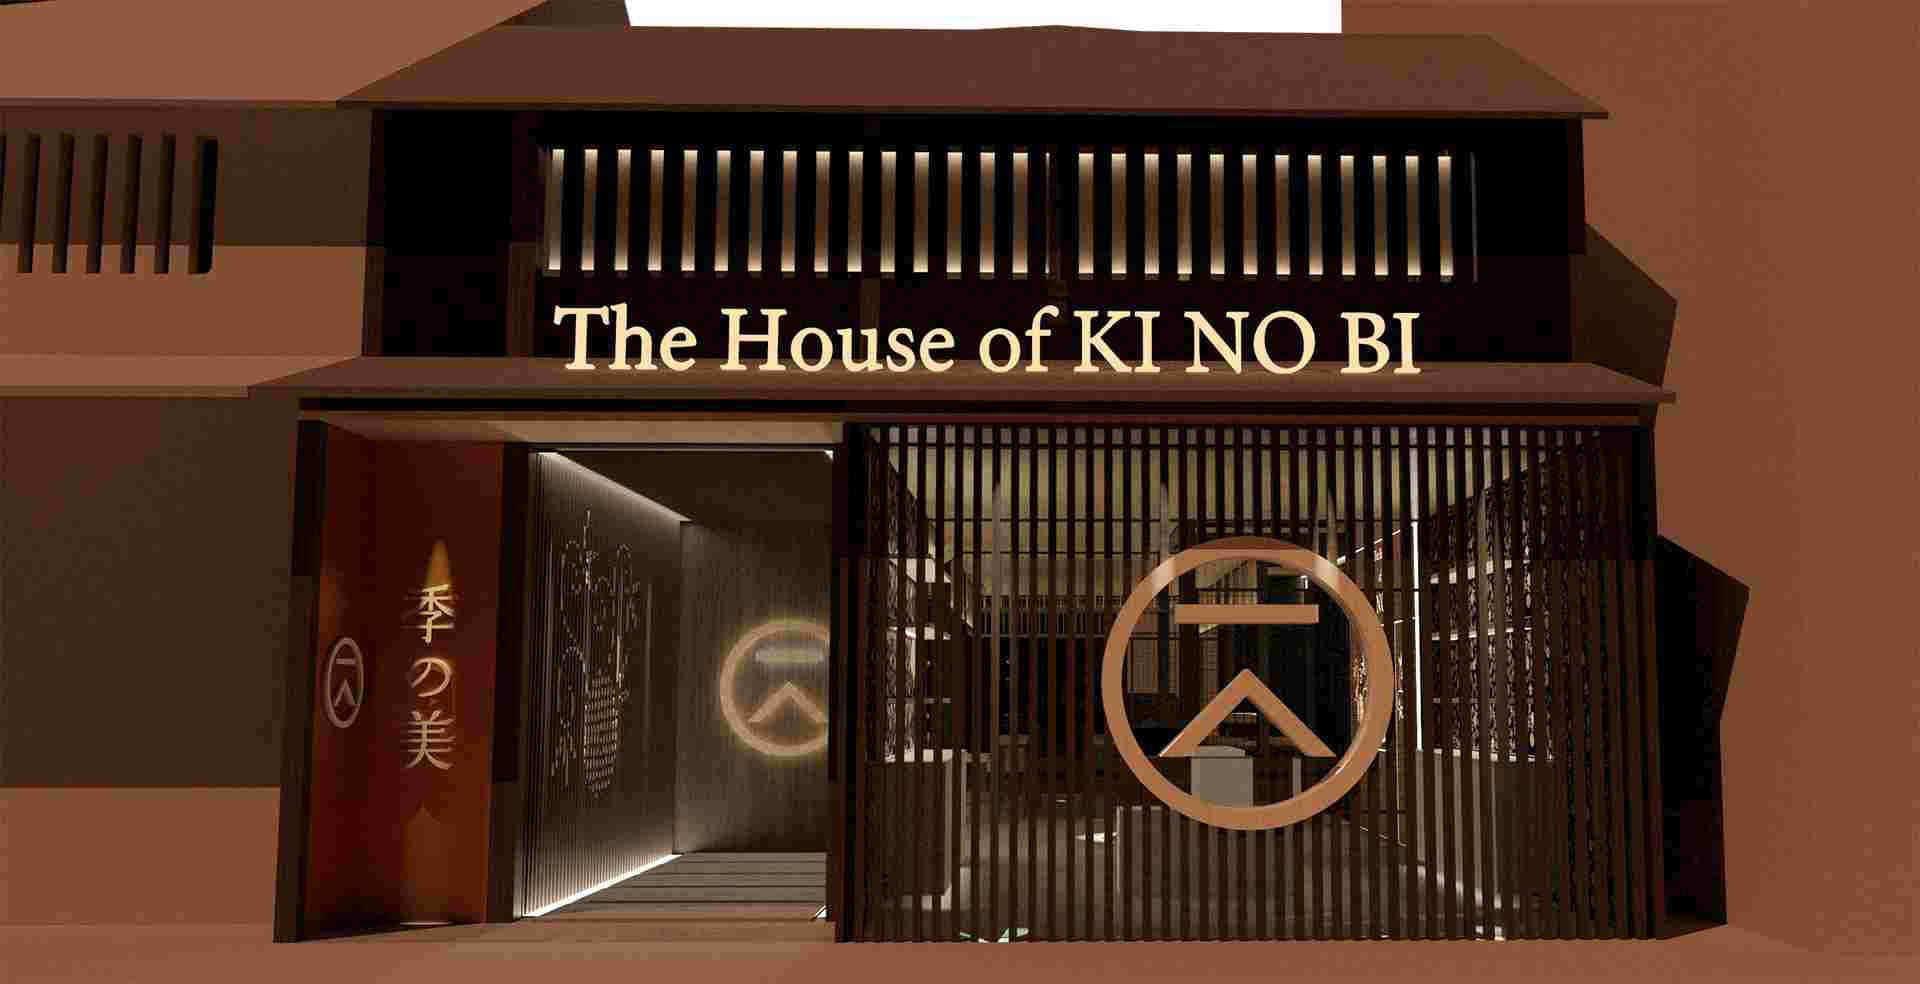 The House of Ki No Bi